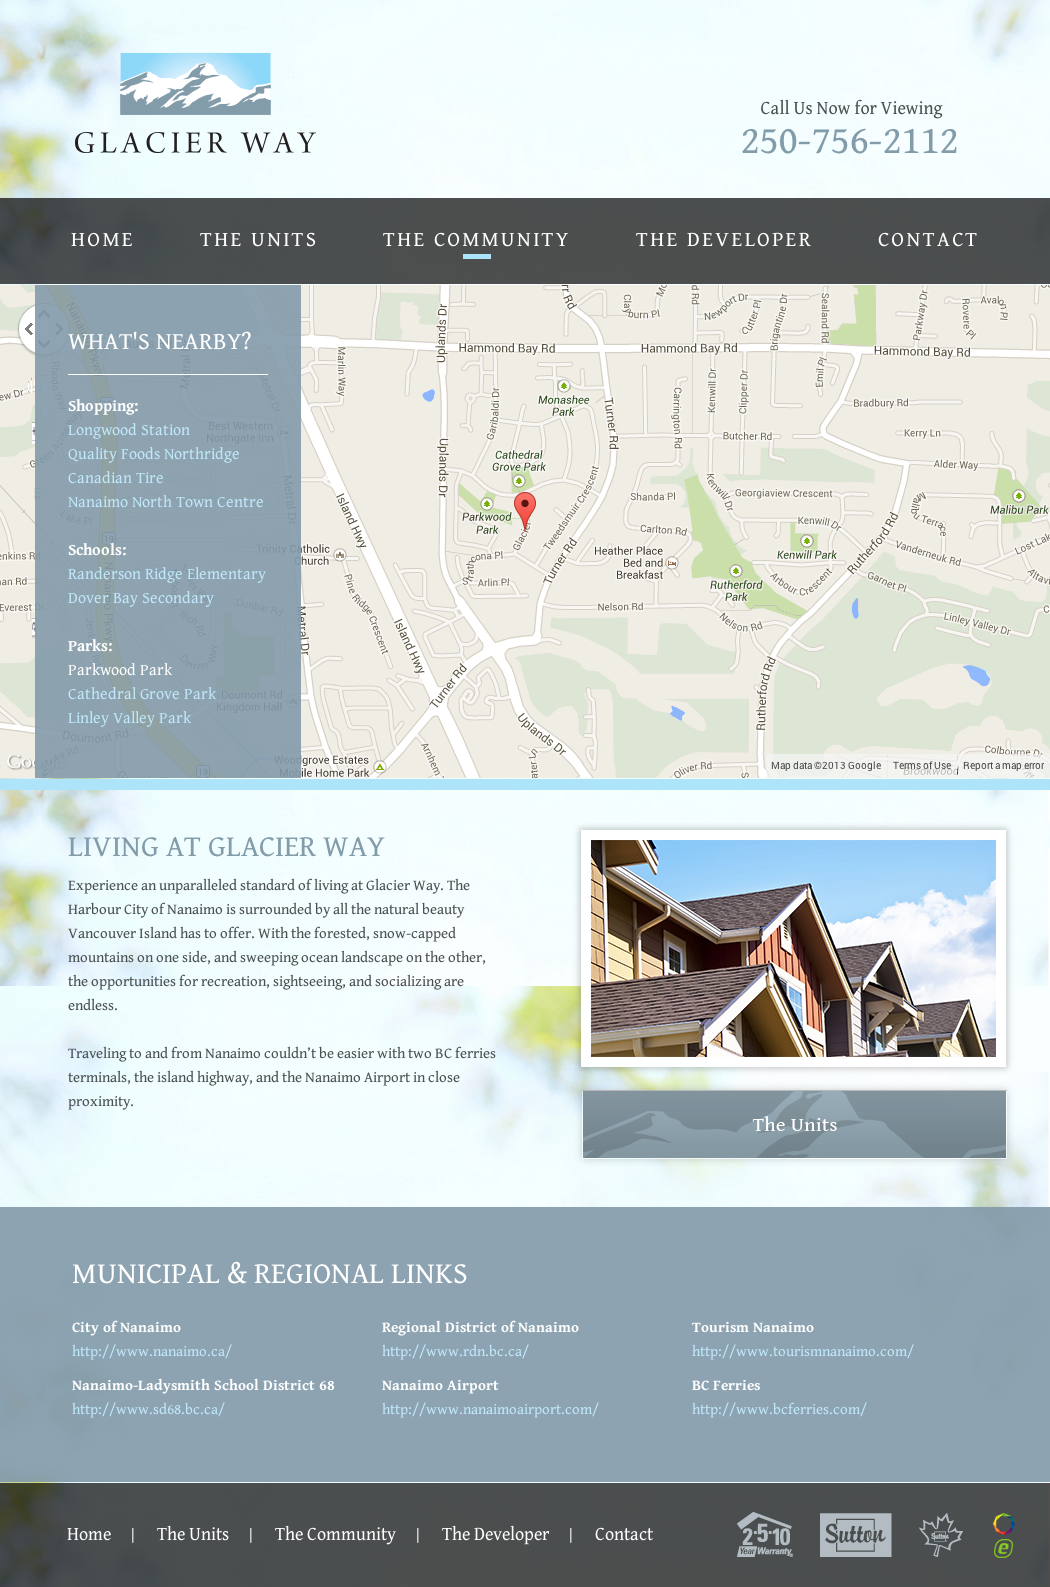 Recently Launched Glacier Way Townhomes Array Web Creative Nanaimo Townhome Developer Website Design Custom Website Design Website Design Design